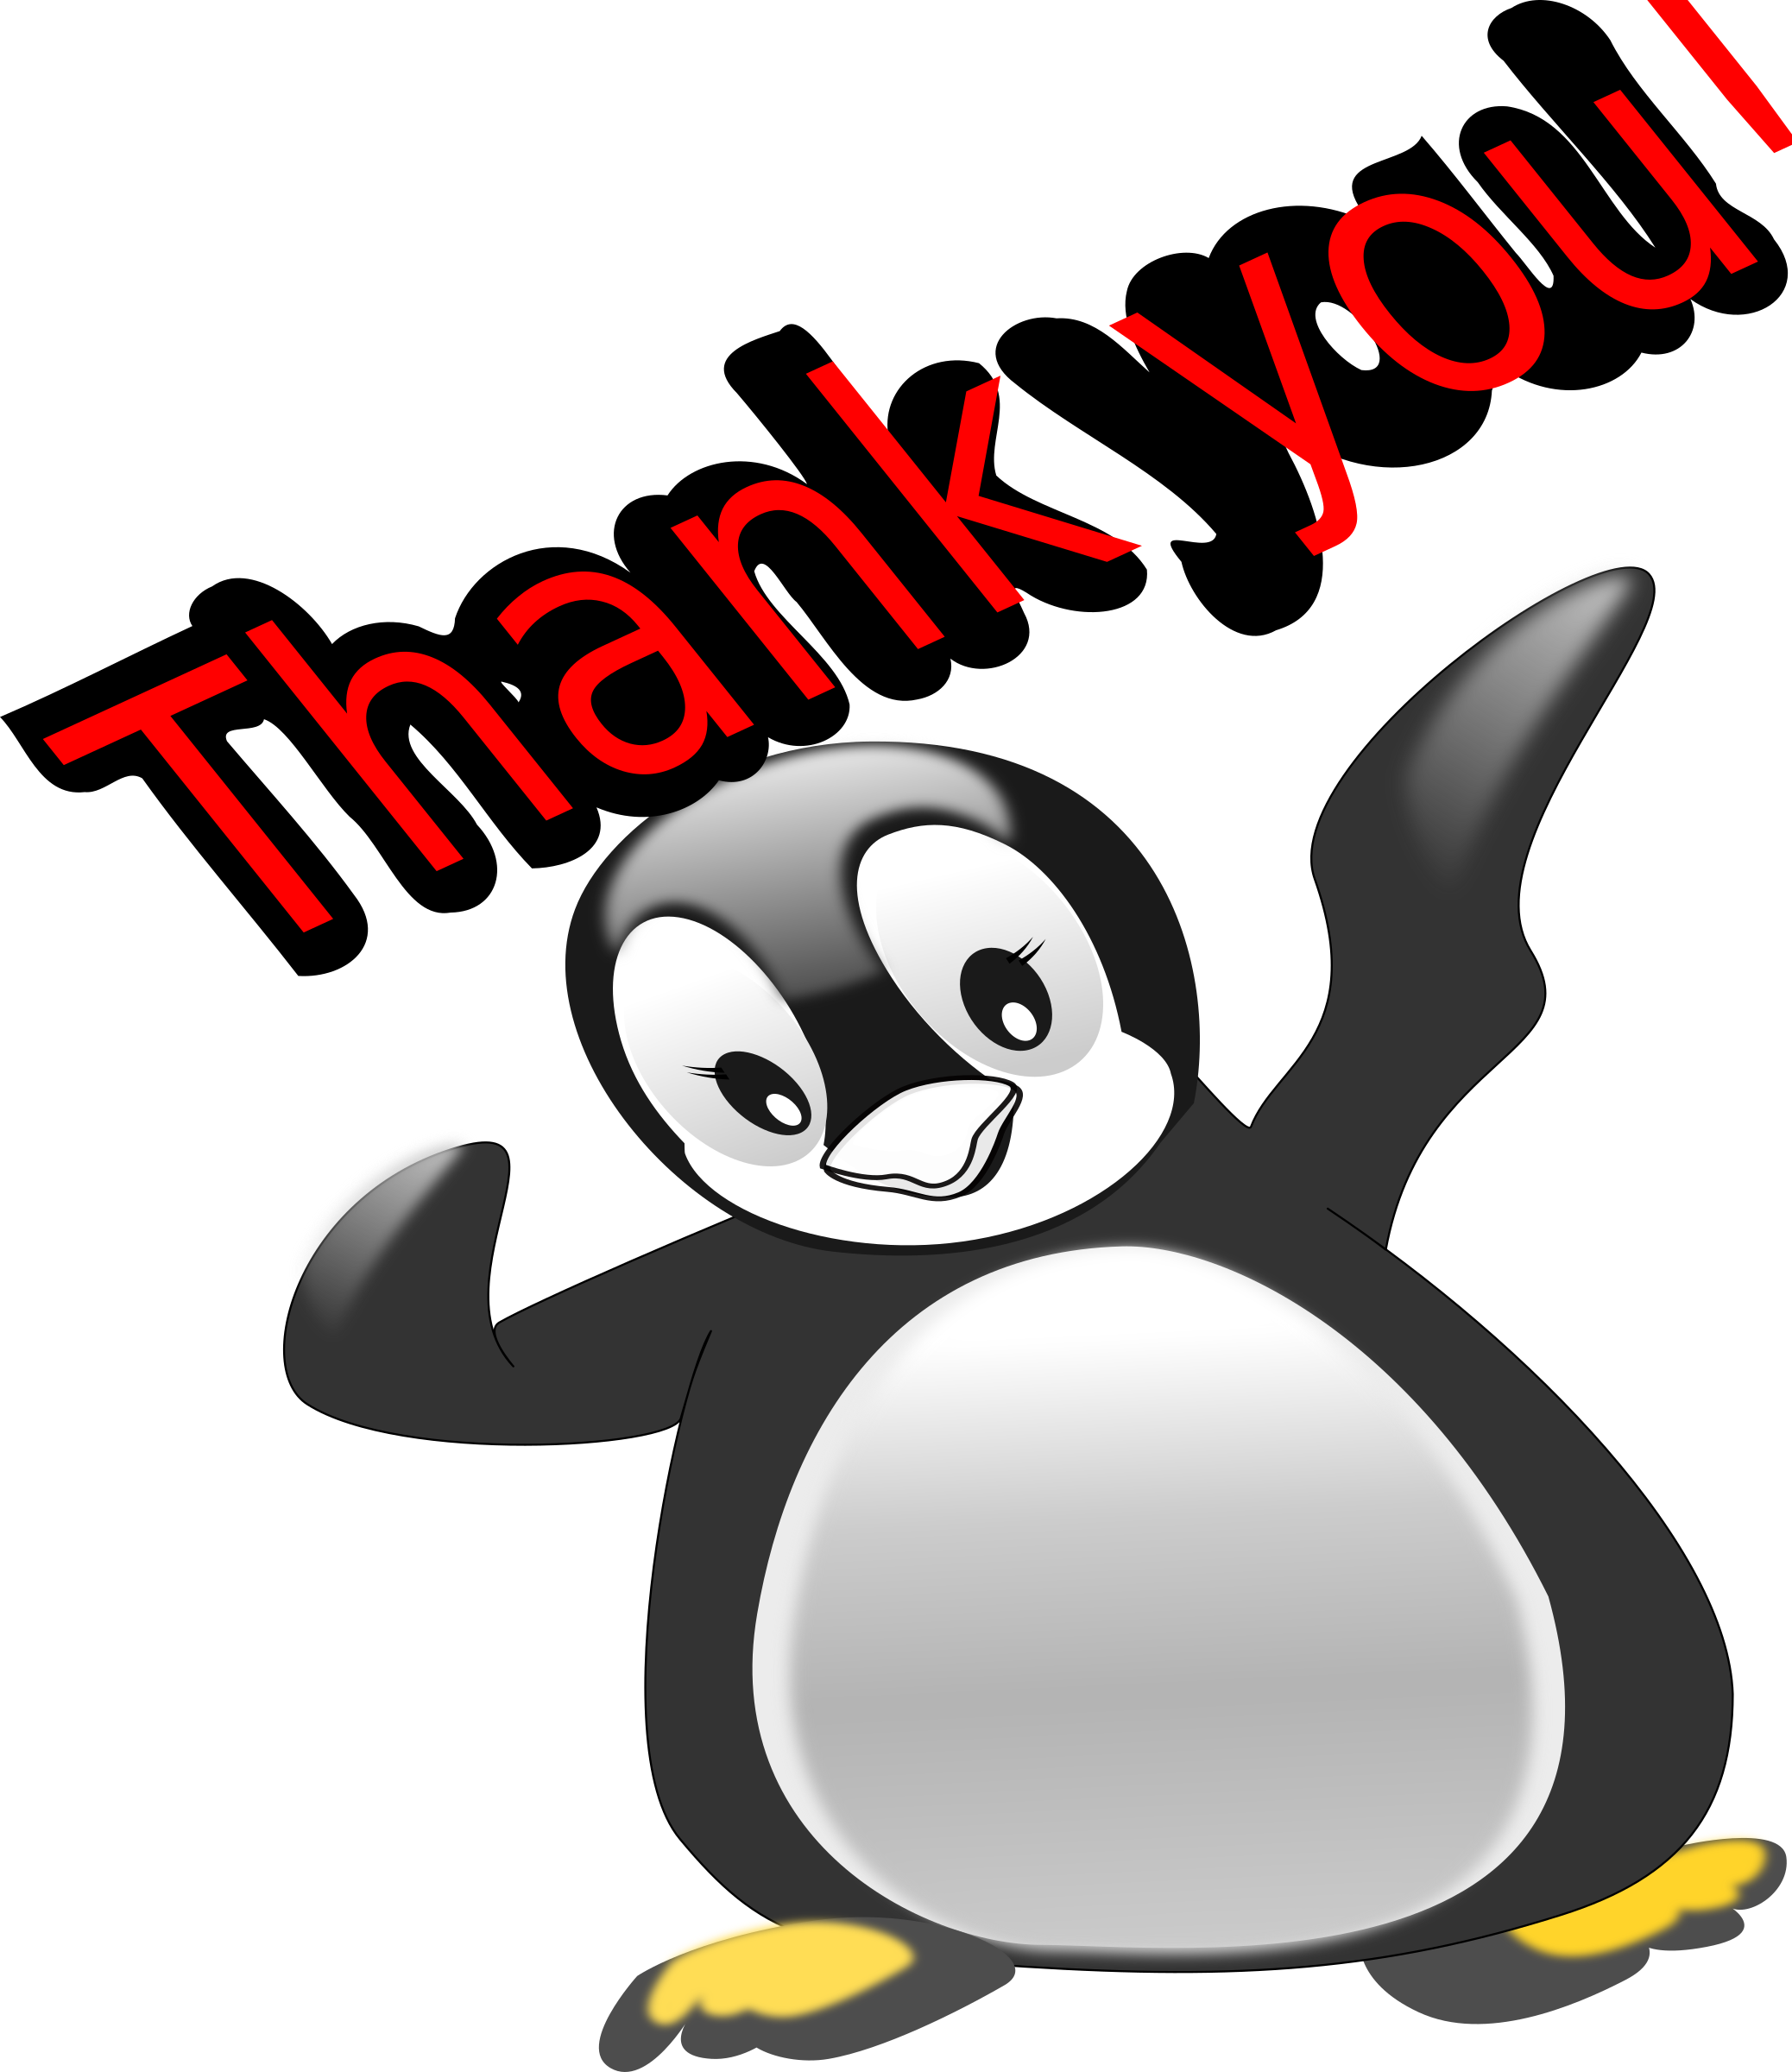 Penquin thank you